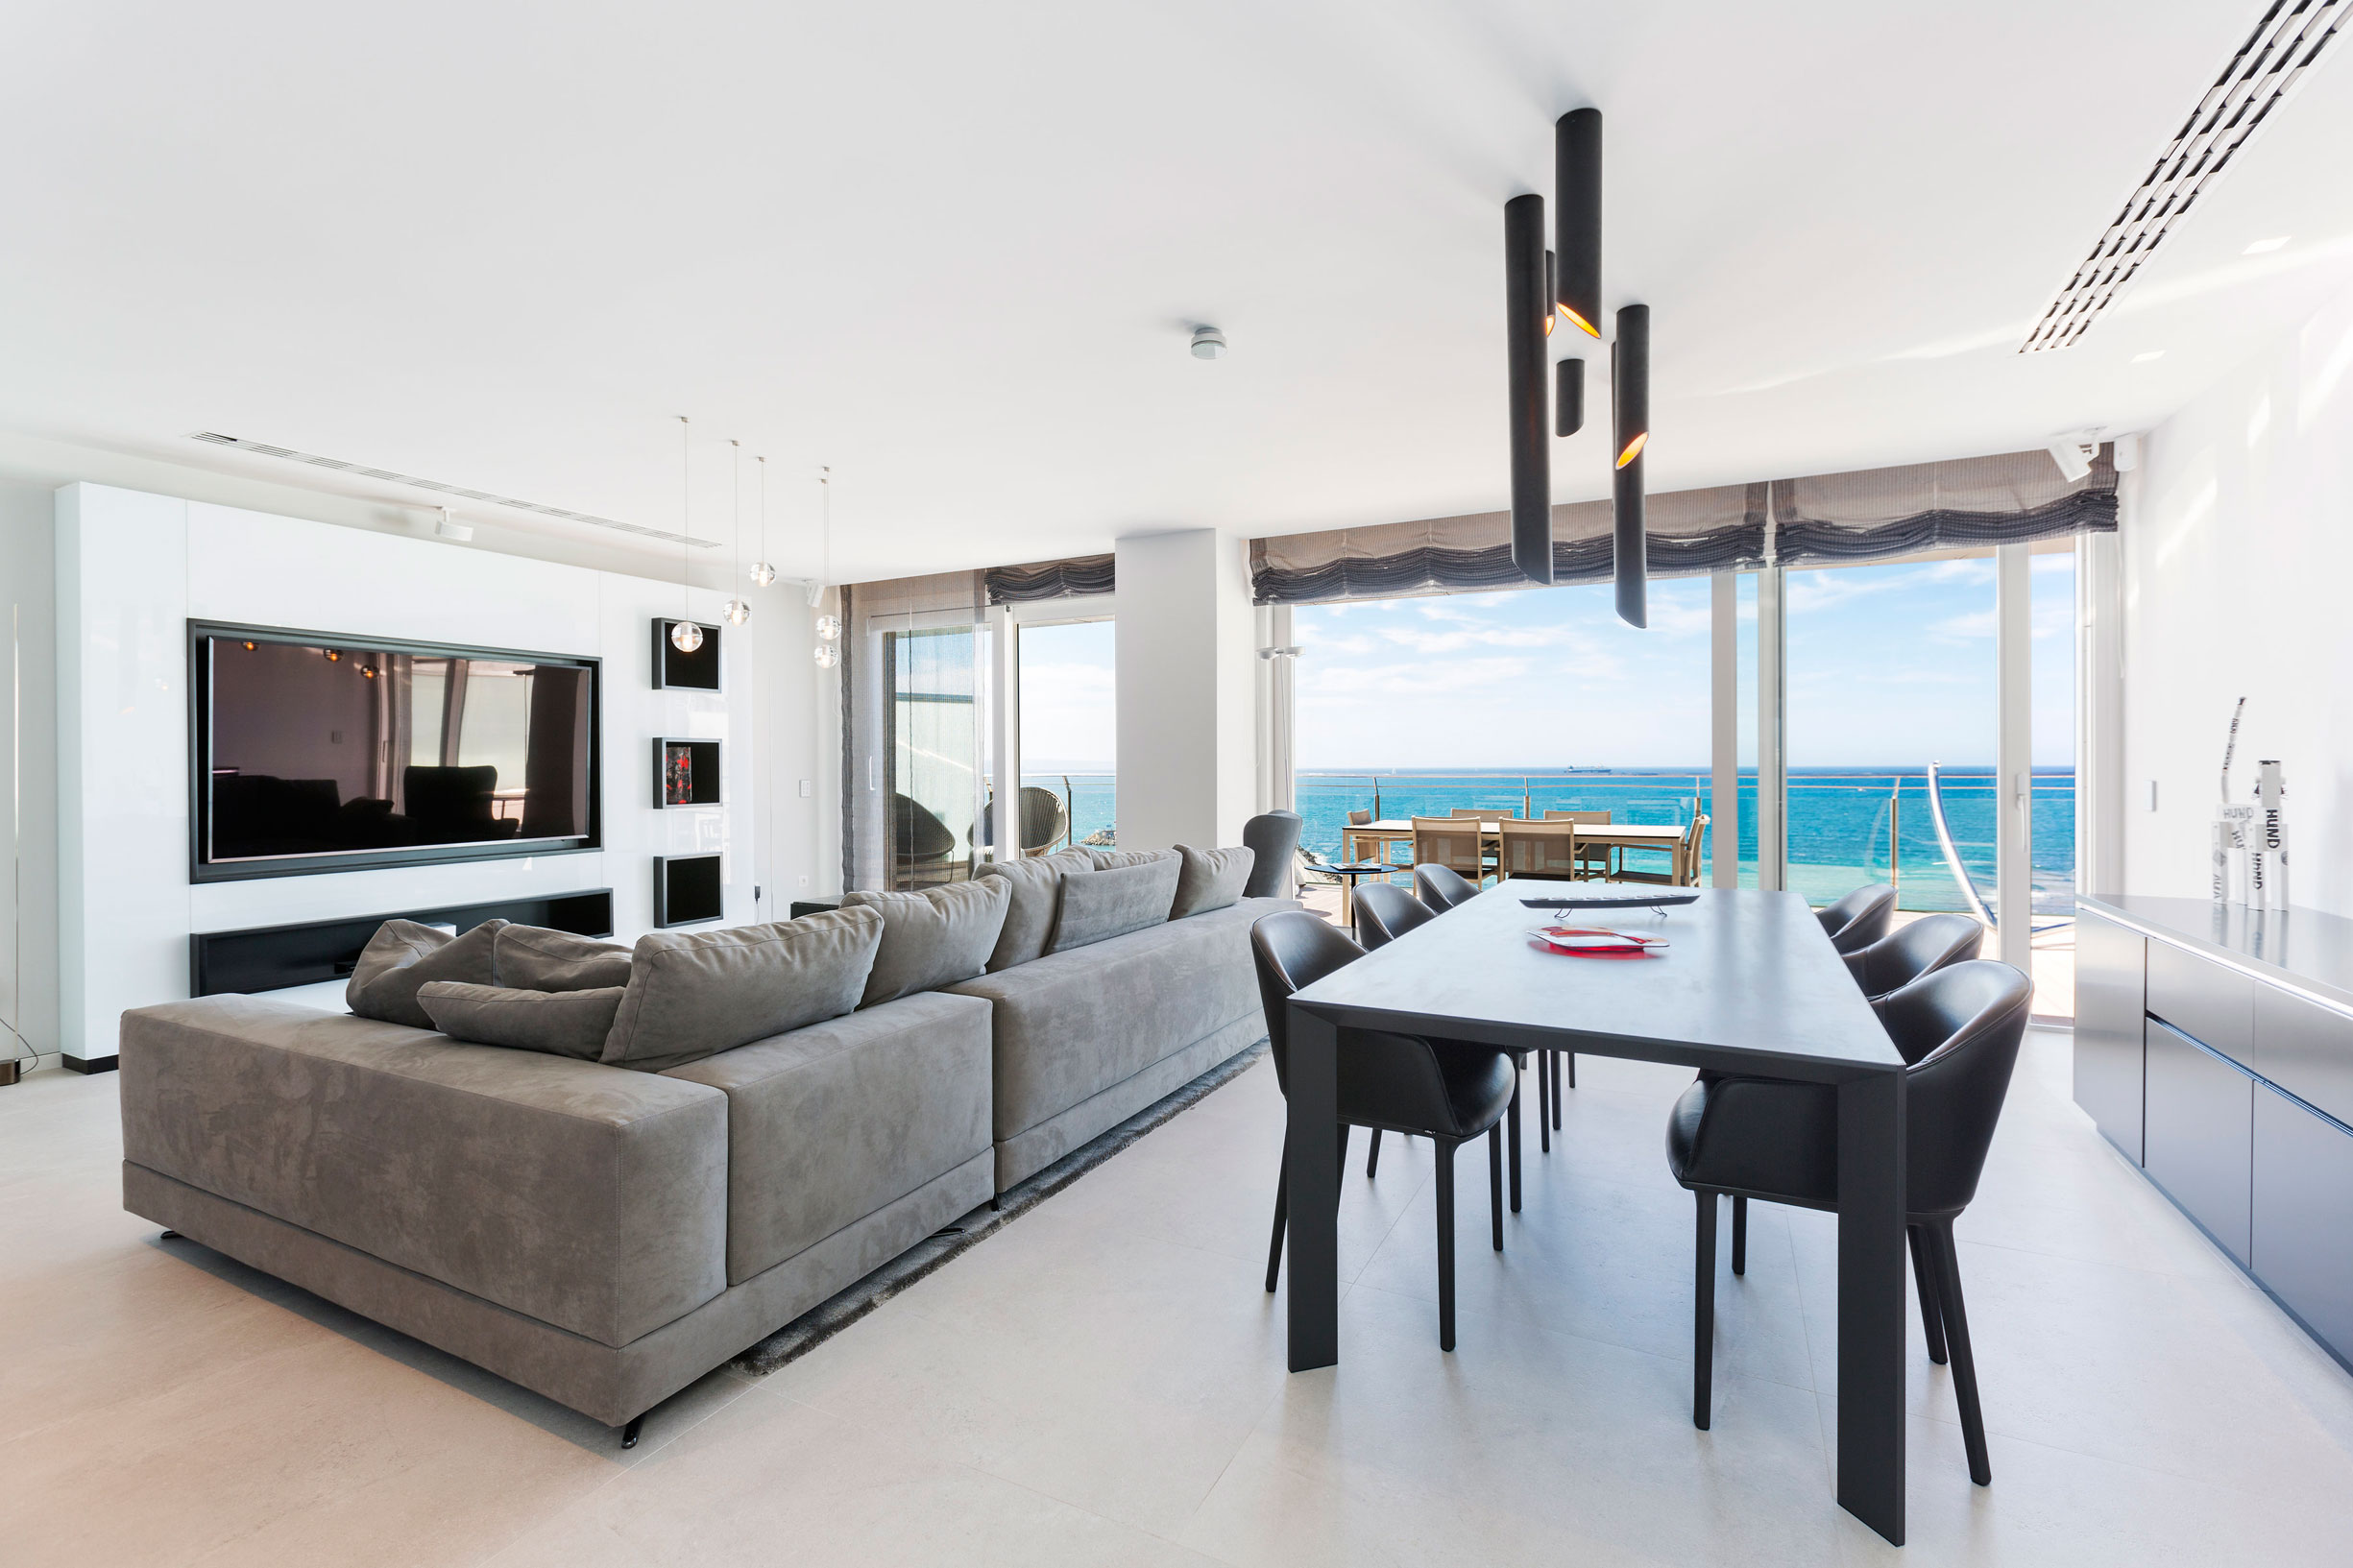 Bornelo Interior Design Creates a Stunning Penthouse with Spectacular Views in Palma de Mallorca